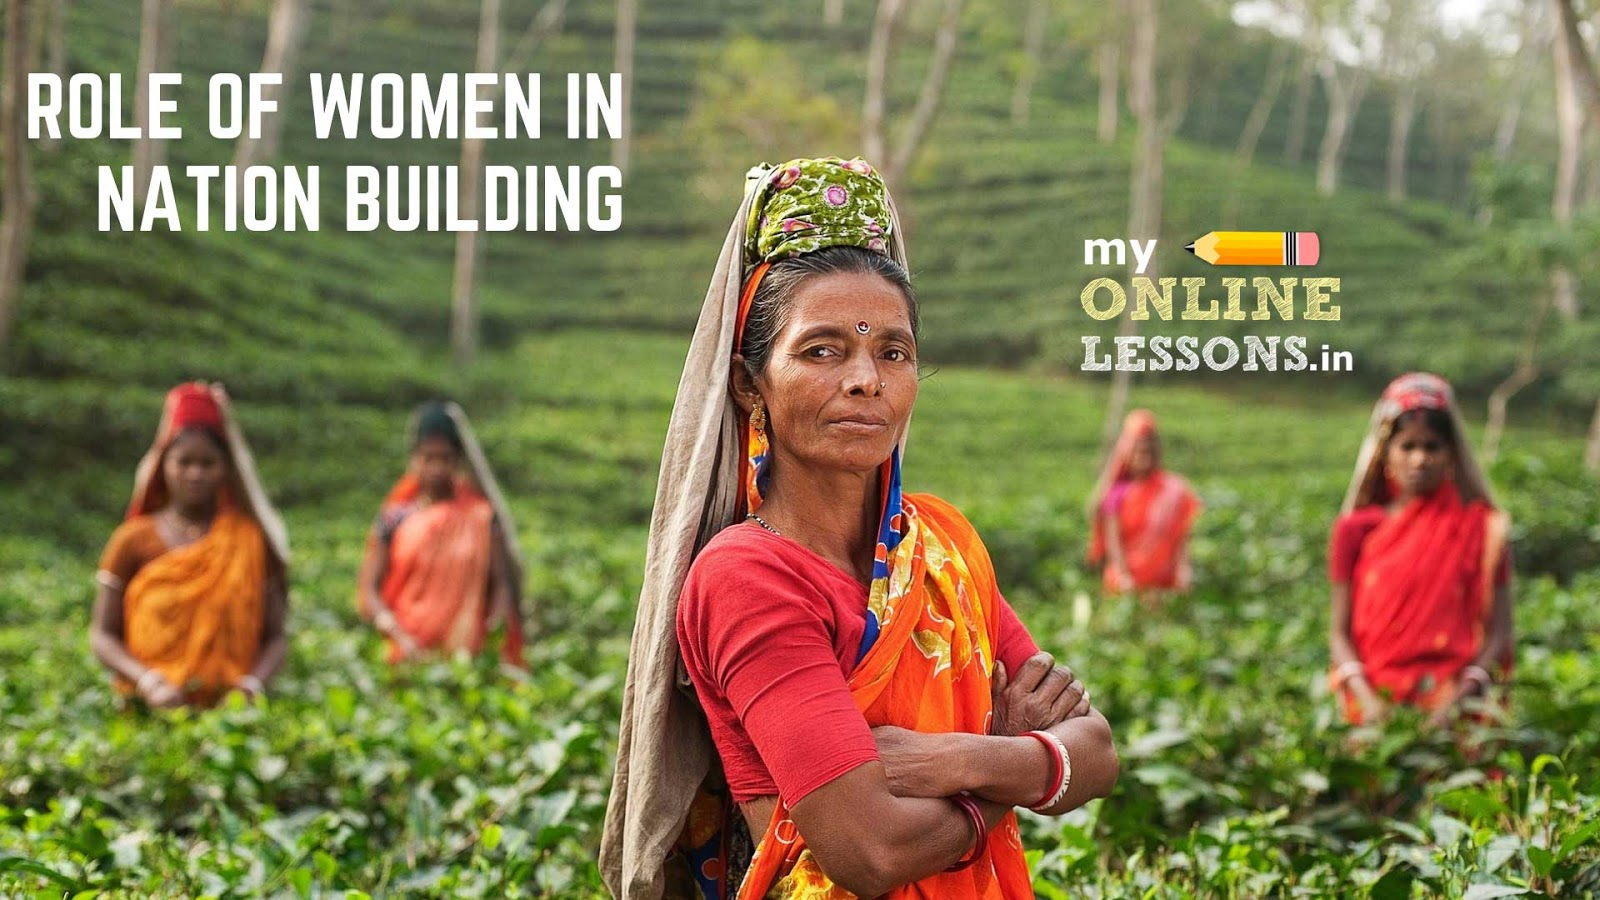 Role of women in nation building